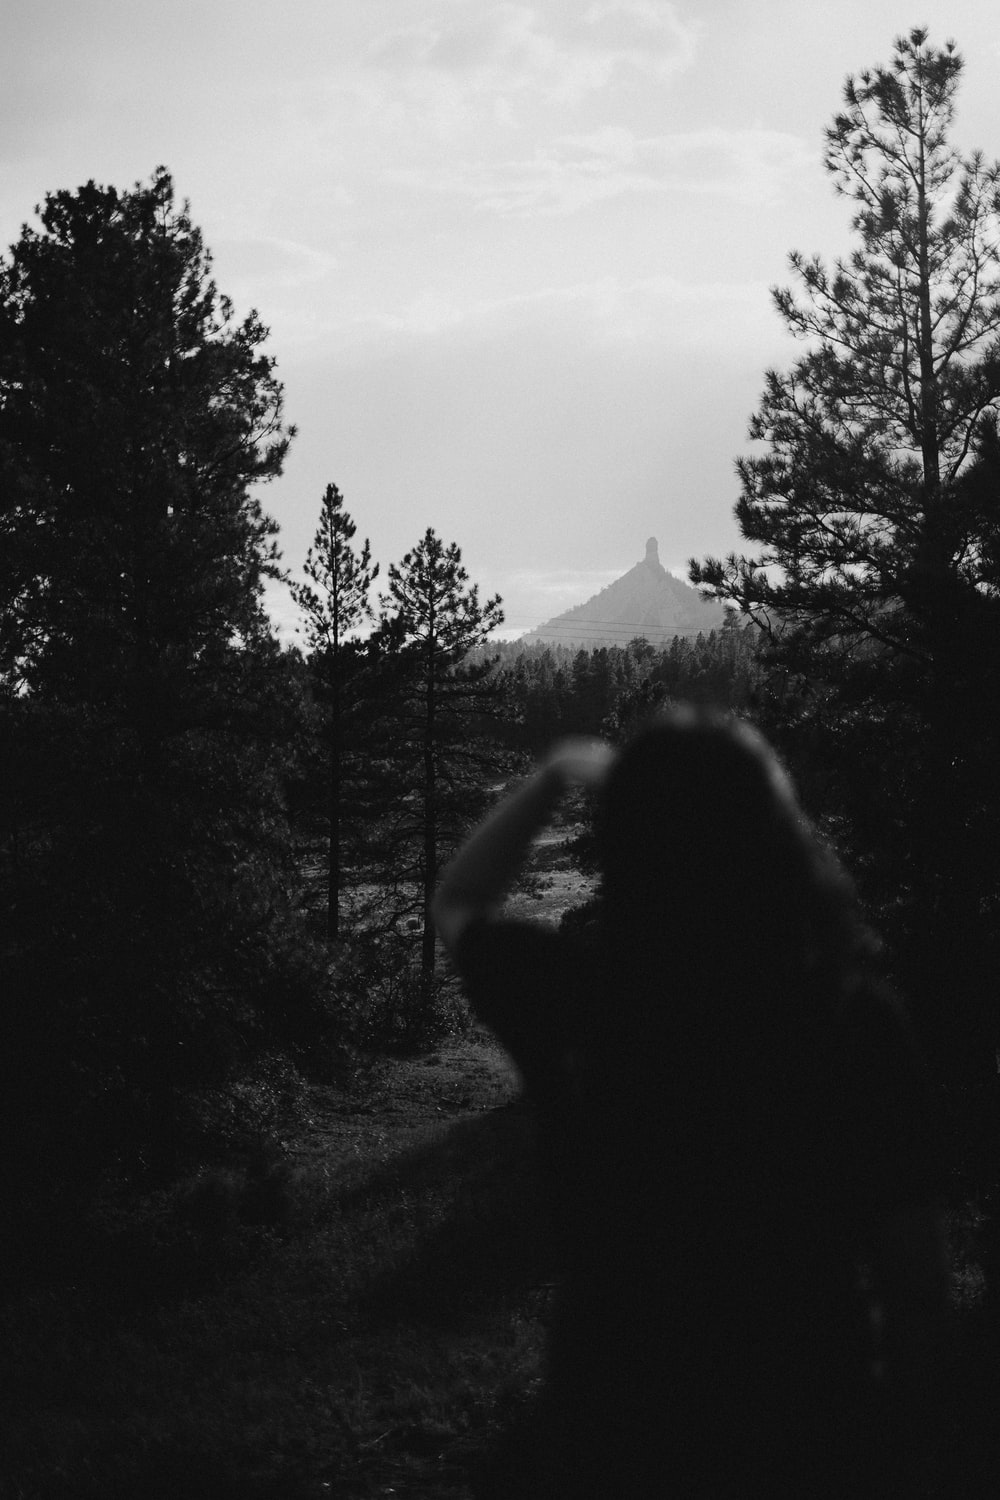 grayscale photo of woman standing near trees